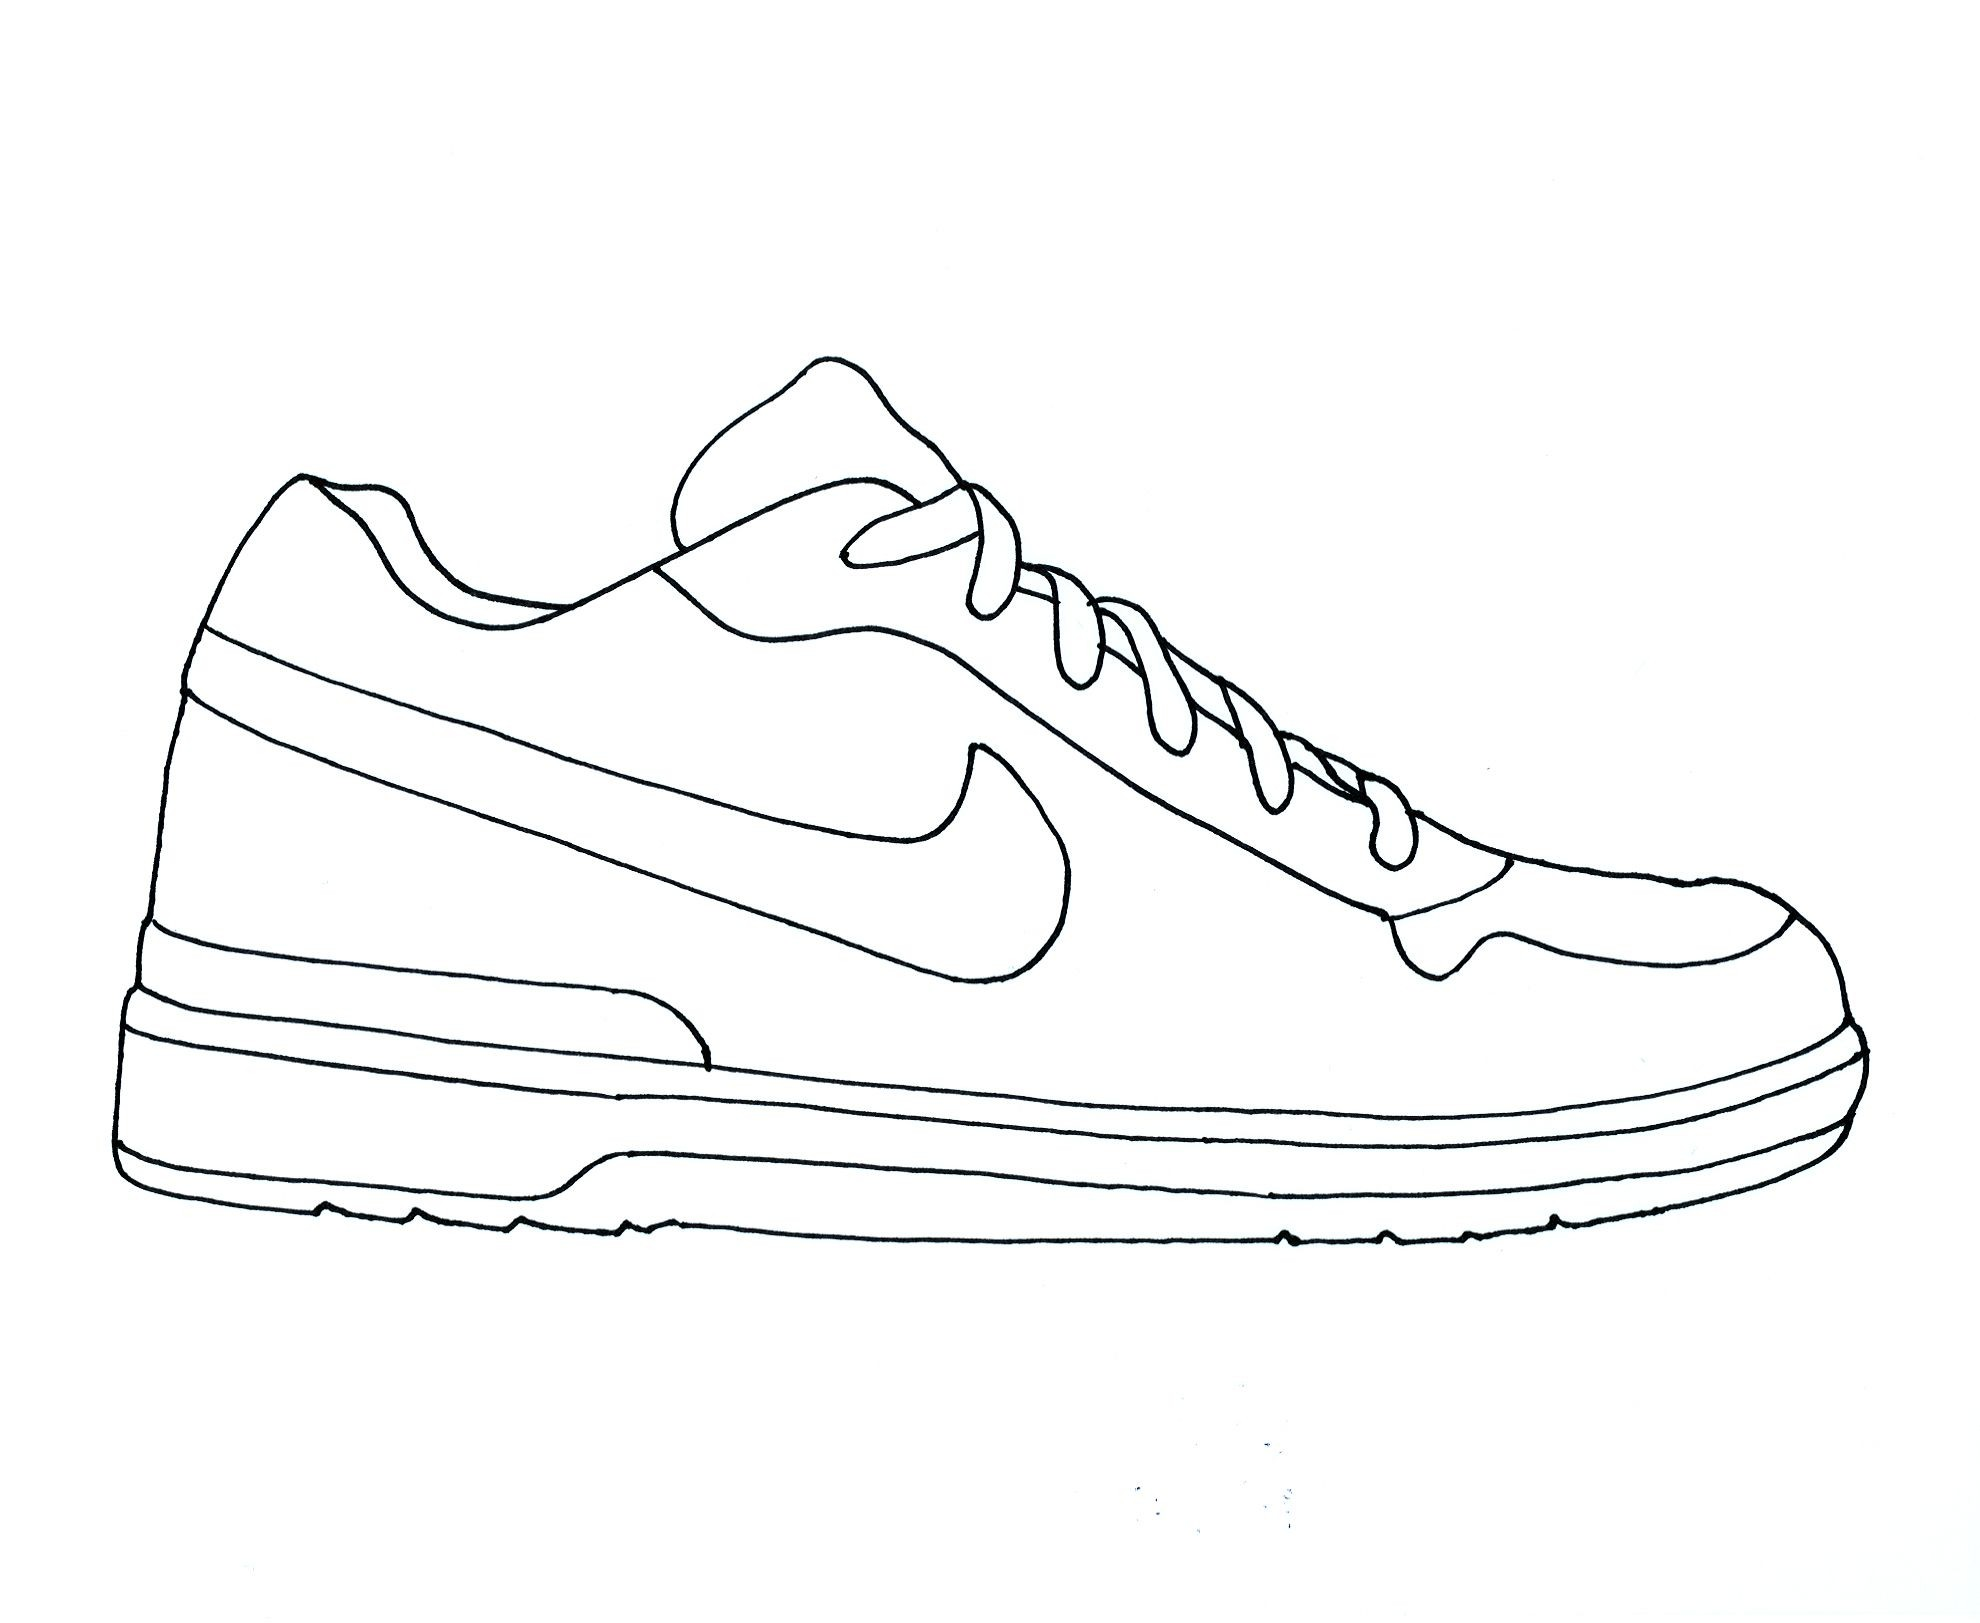 1980x1623 Coloring Pages Air Jordans Best Of Jordan Coloring Pages With Air